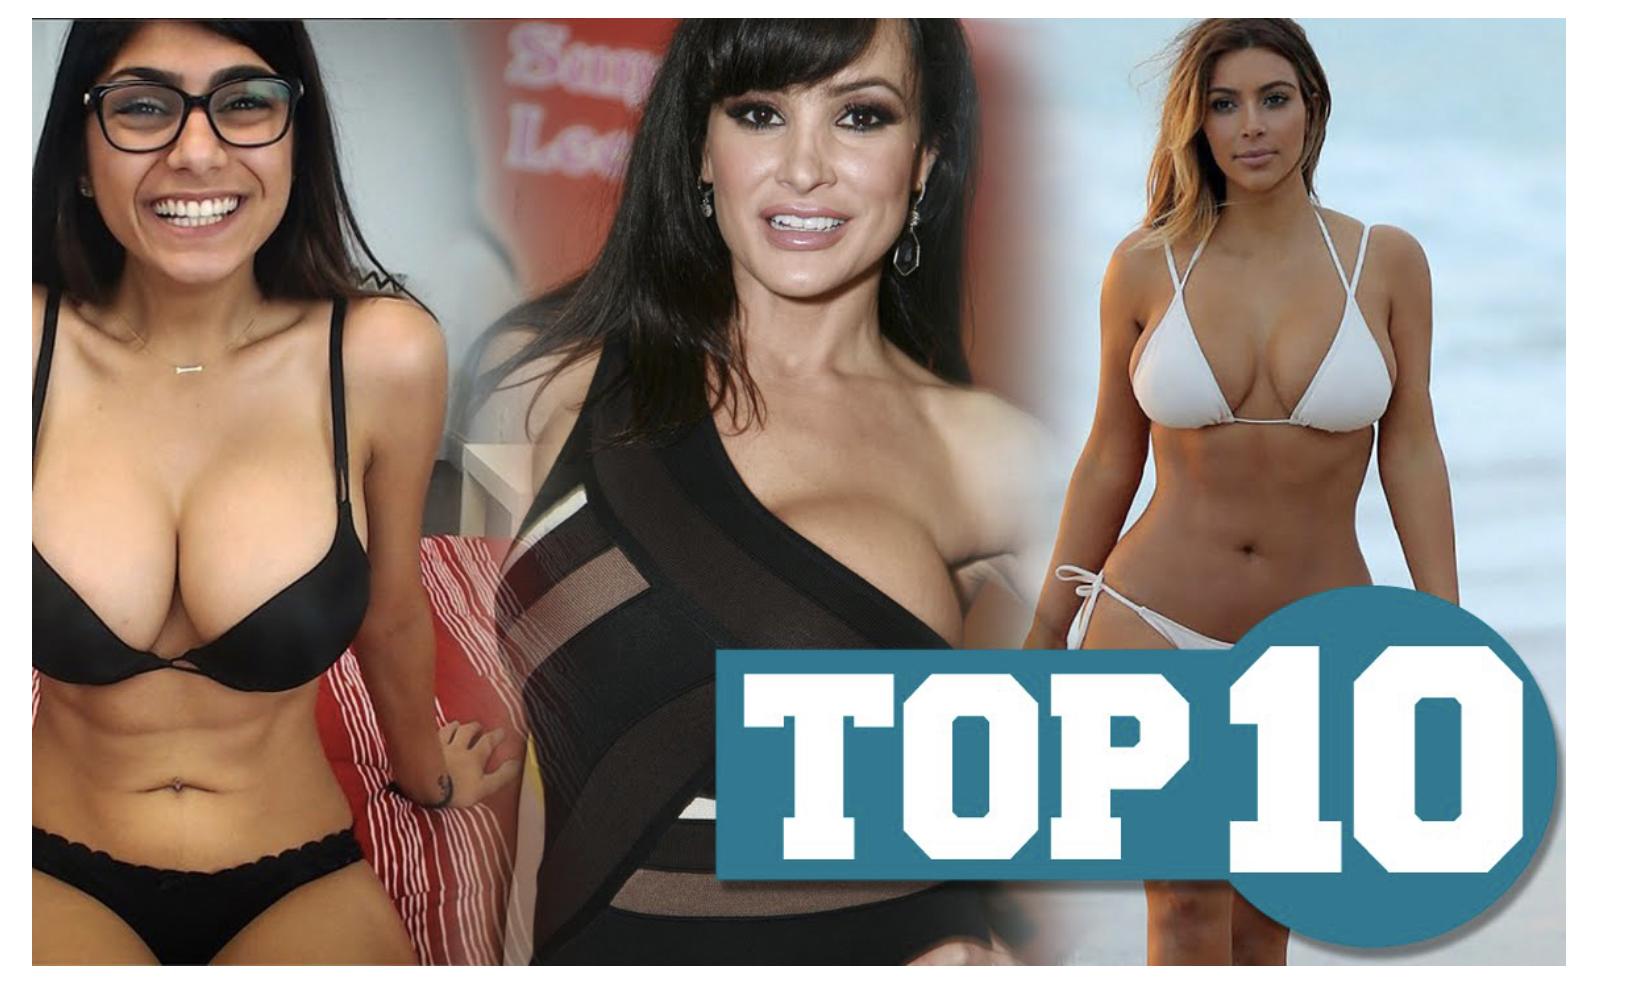 World's Top 10 Pornstars 2019 and their net worth in USD.